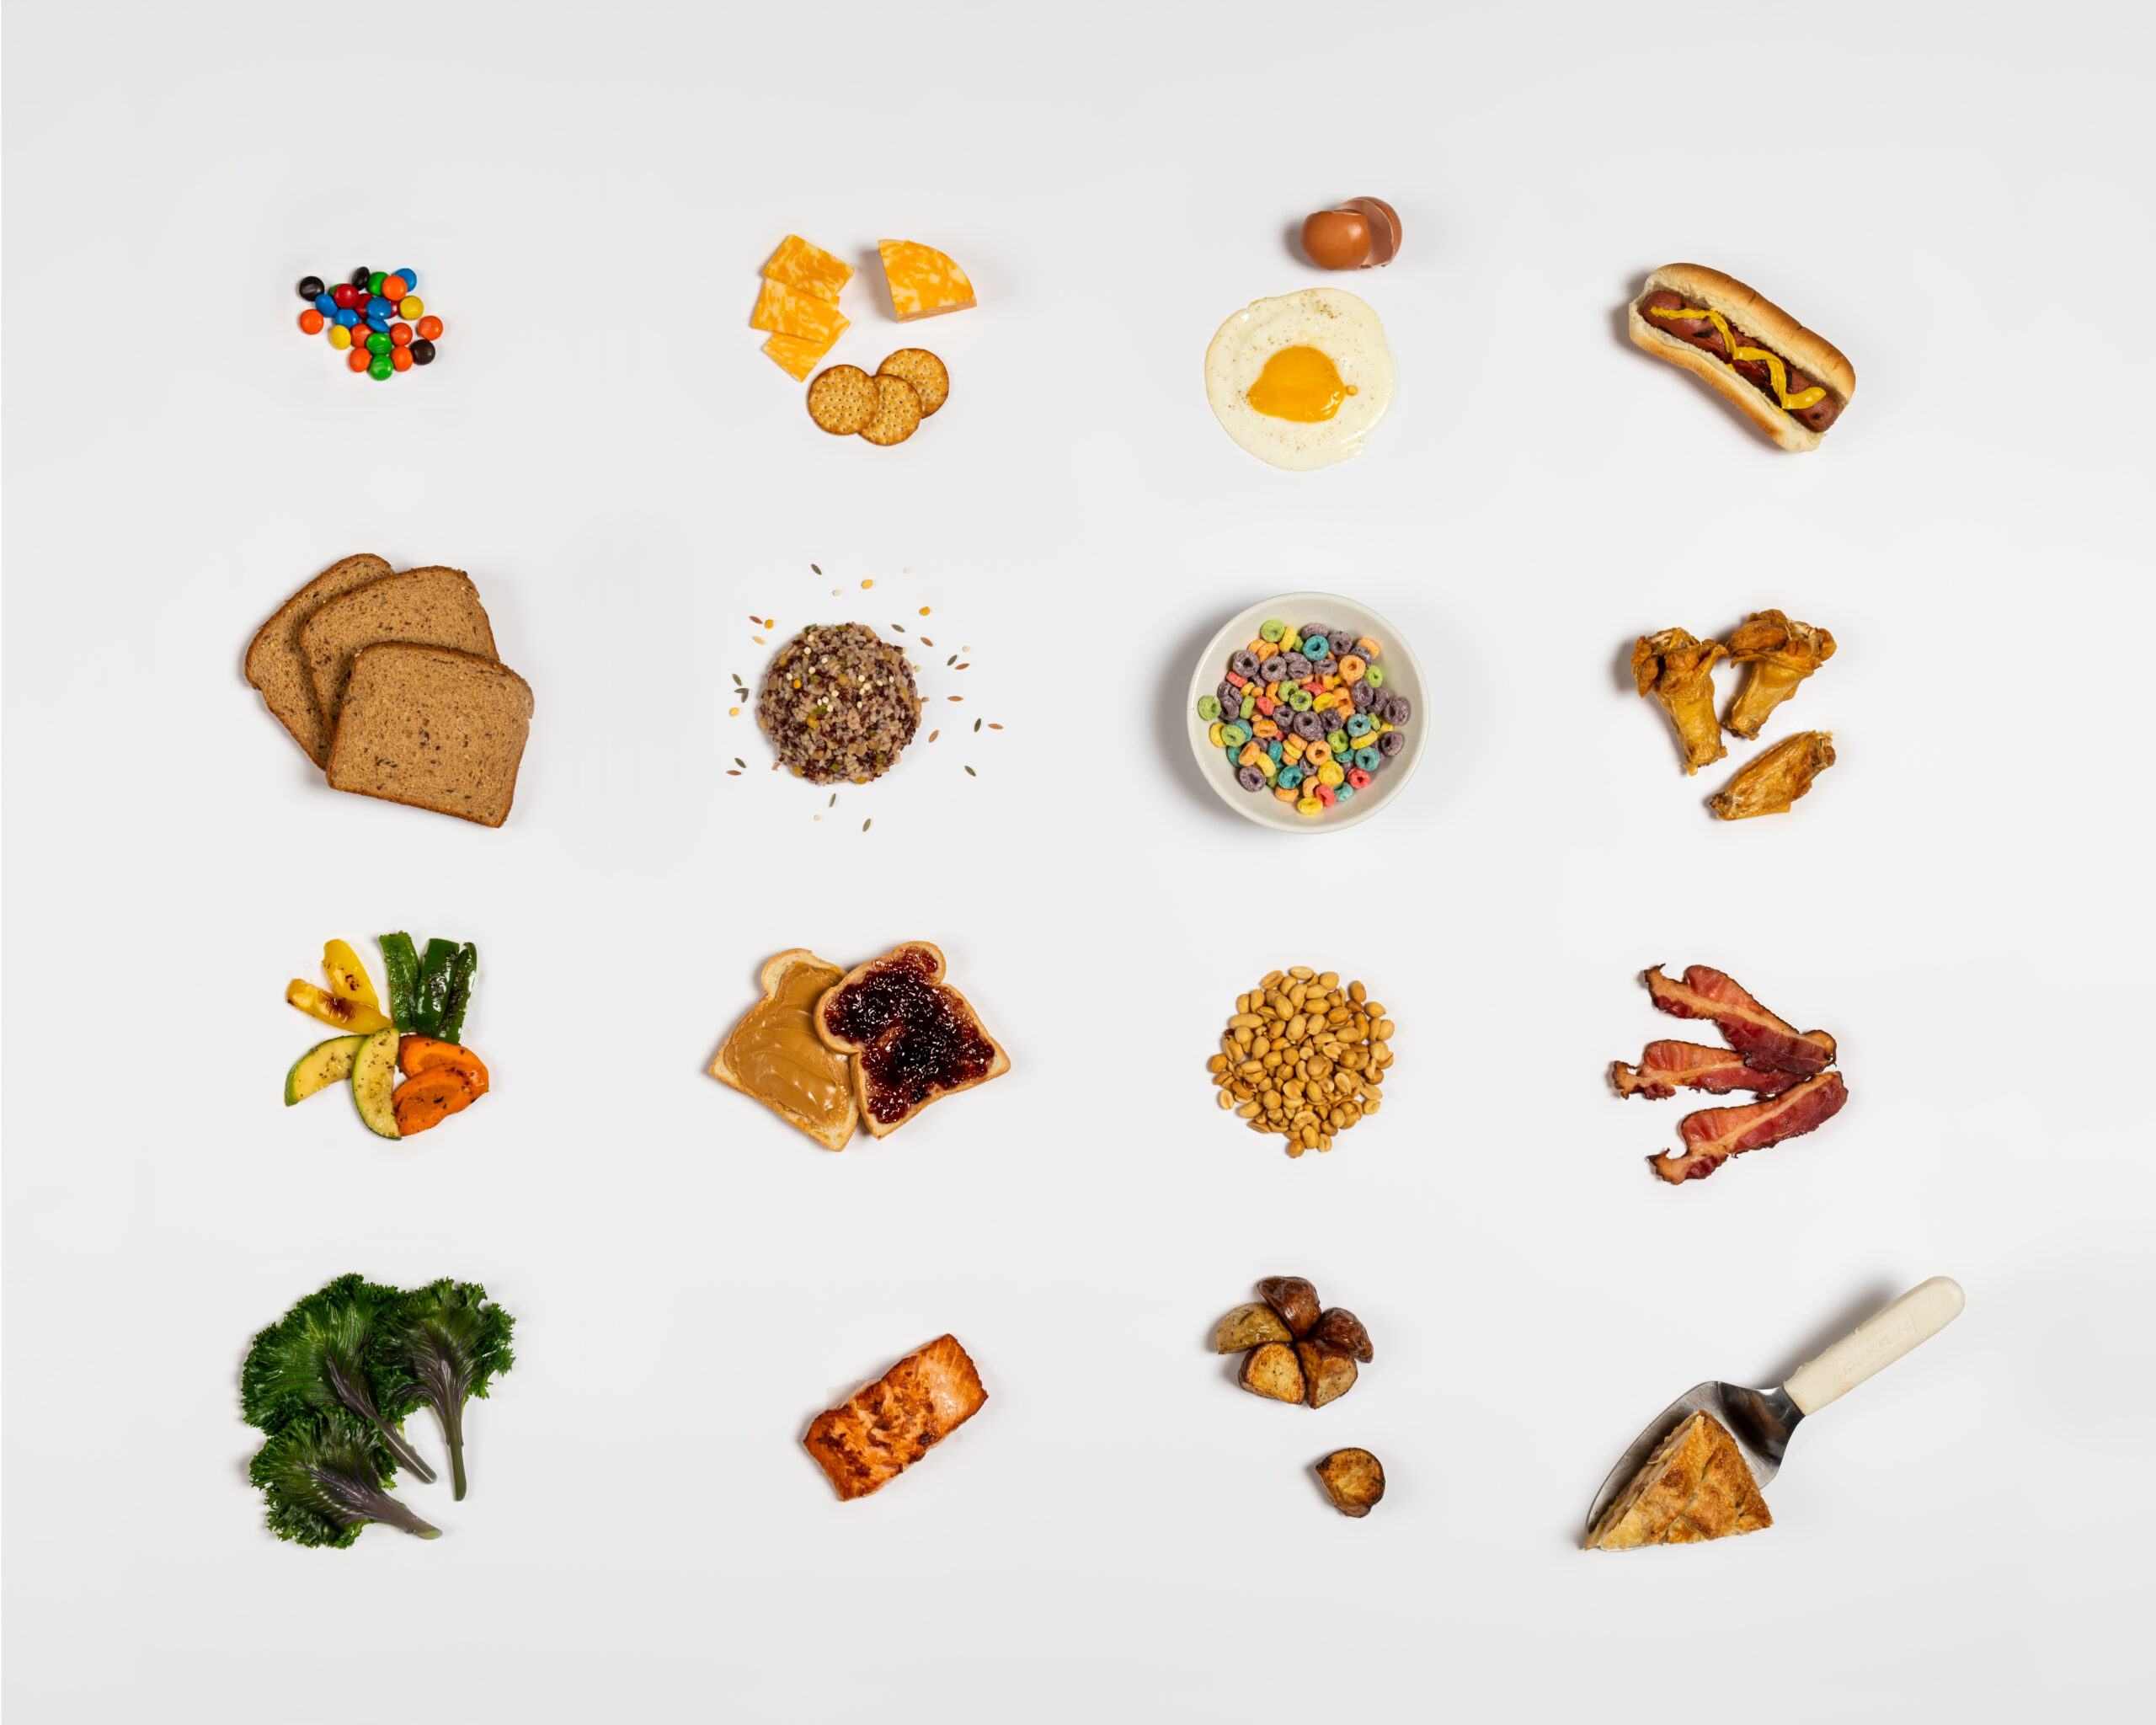 Several food featured in the study. Image credit: Austin Thomason, Michigan Photography